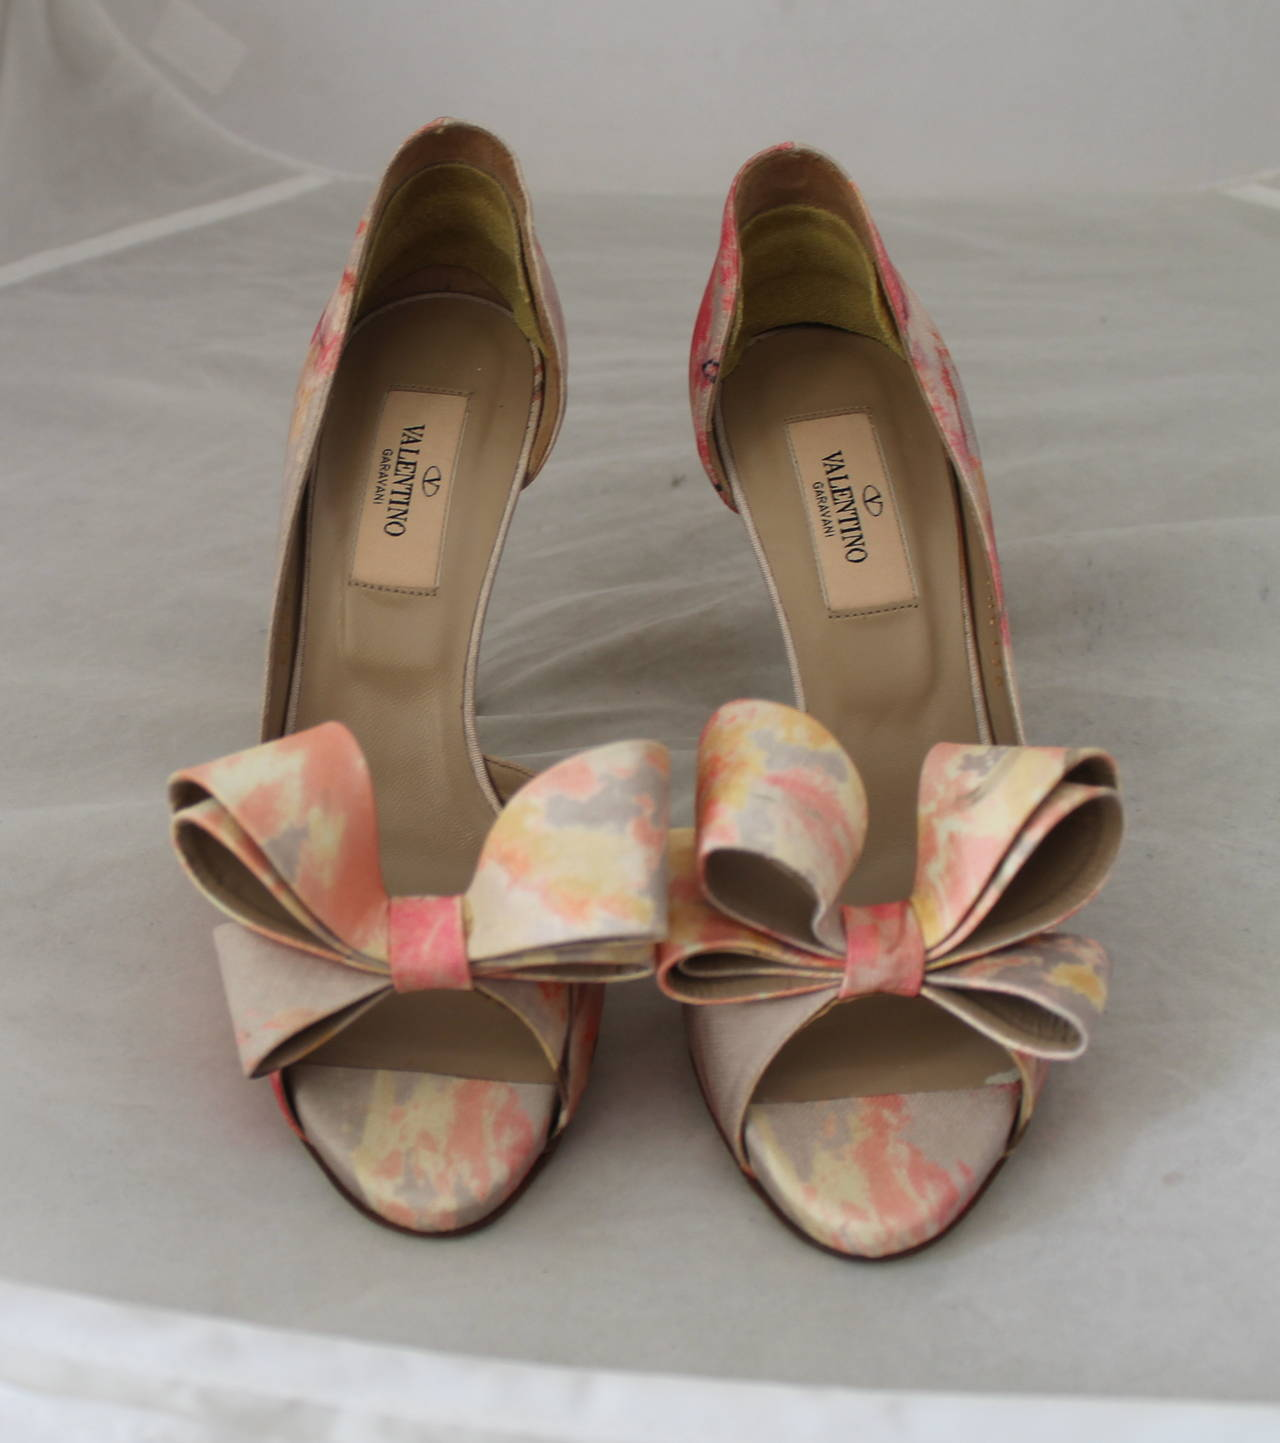 Valentino Tan & Pastel Pink Printed Bow Heels - 36. These shoes are in excellent condition with minor wear on the bottom.